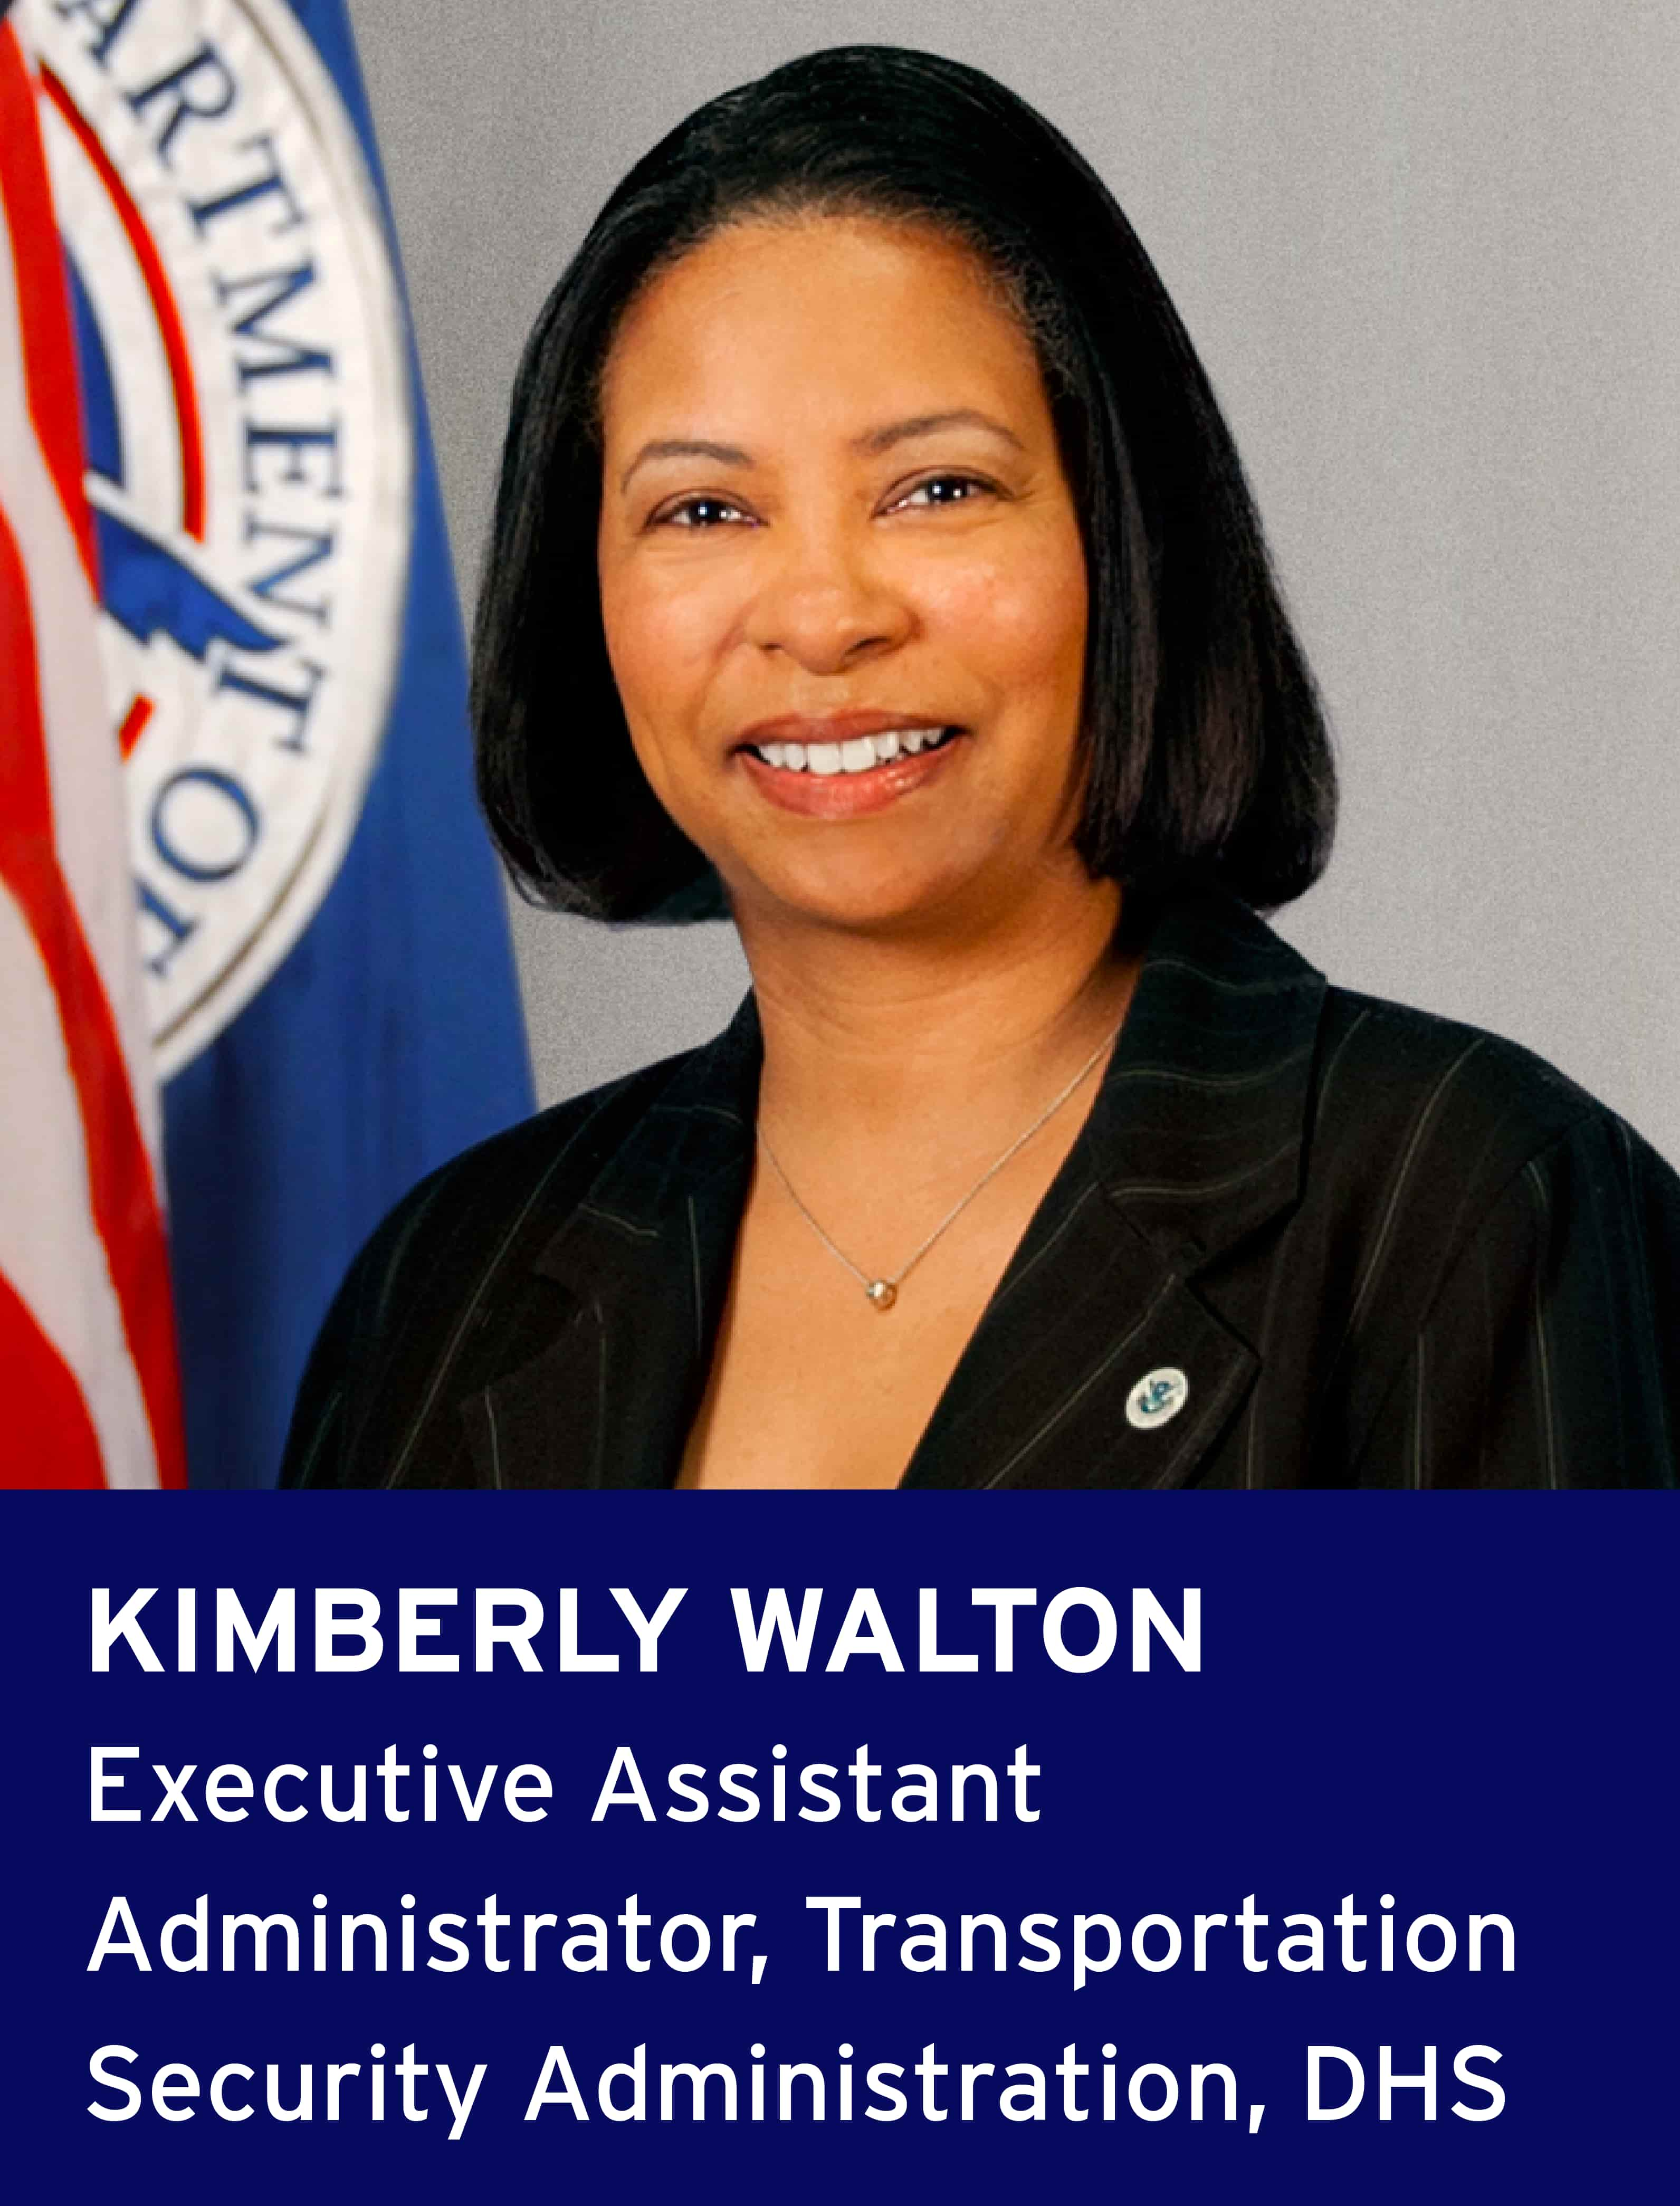 Kimberly Walton, Executive Assistant Administrator, Transportation Security Administration, DHS